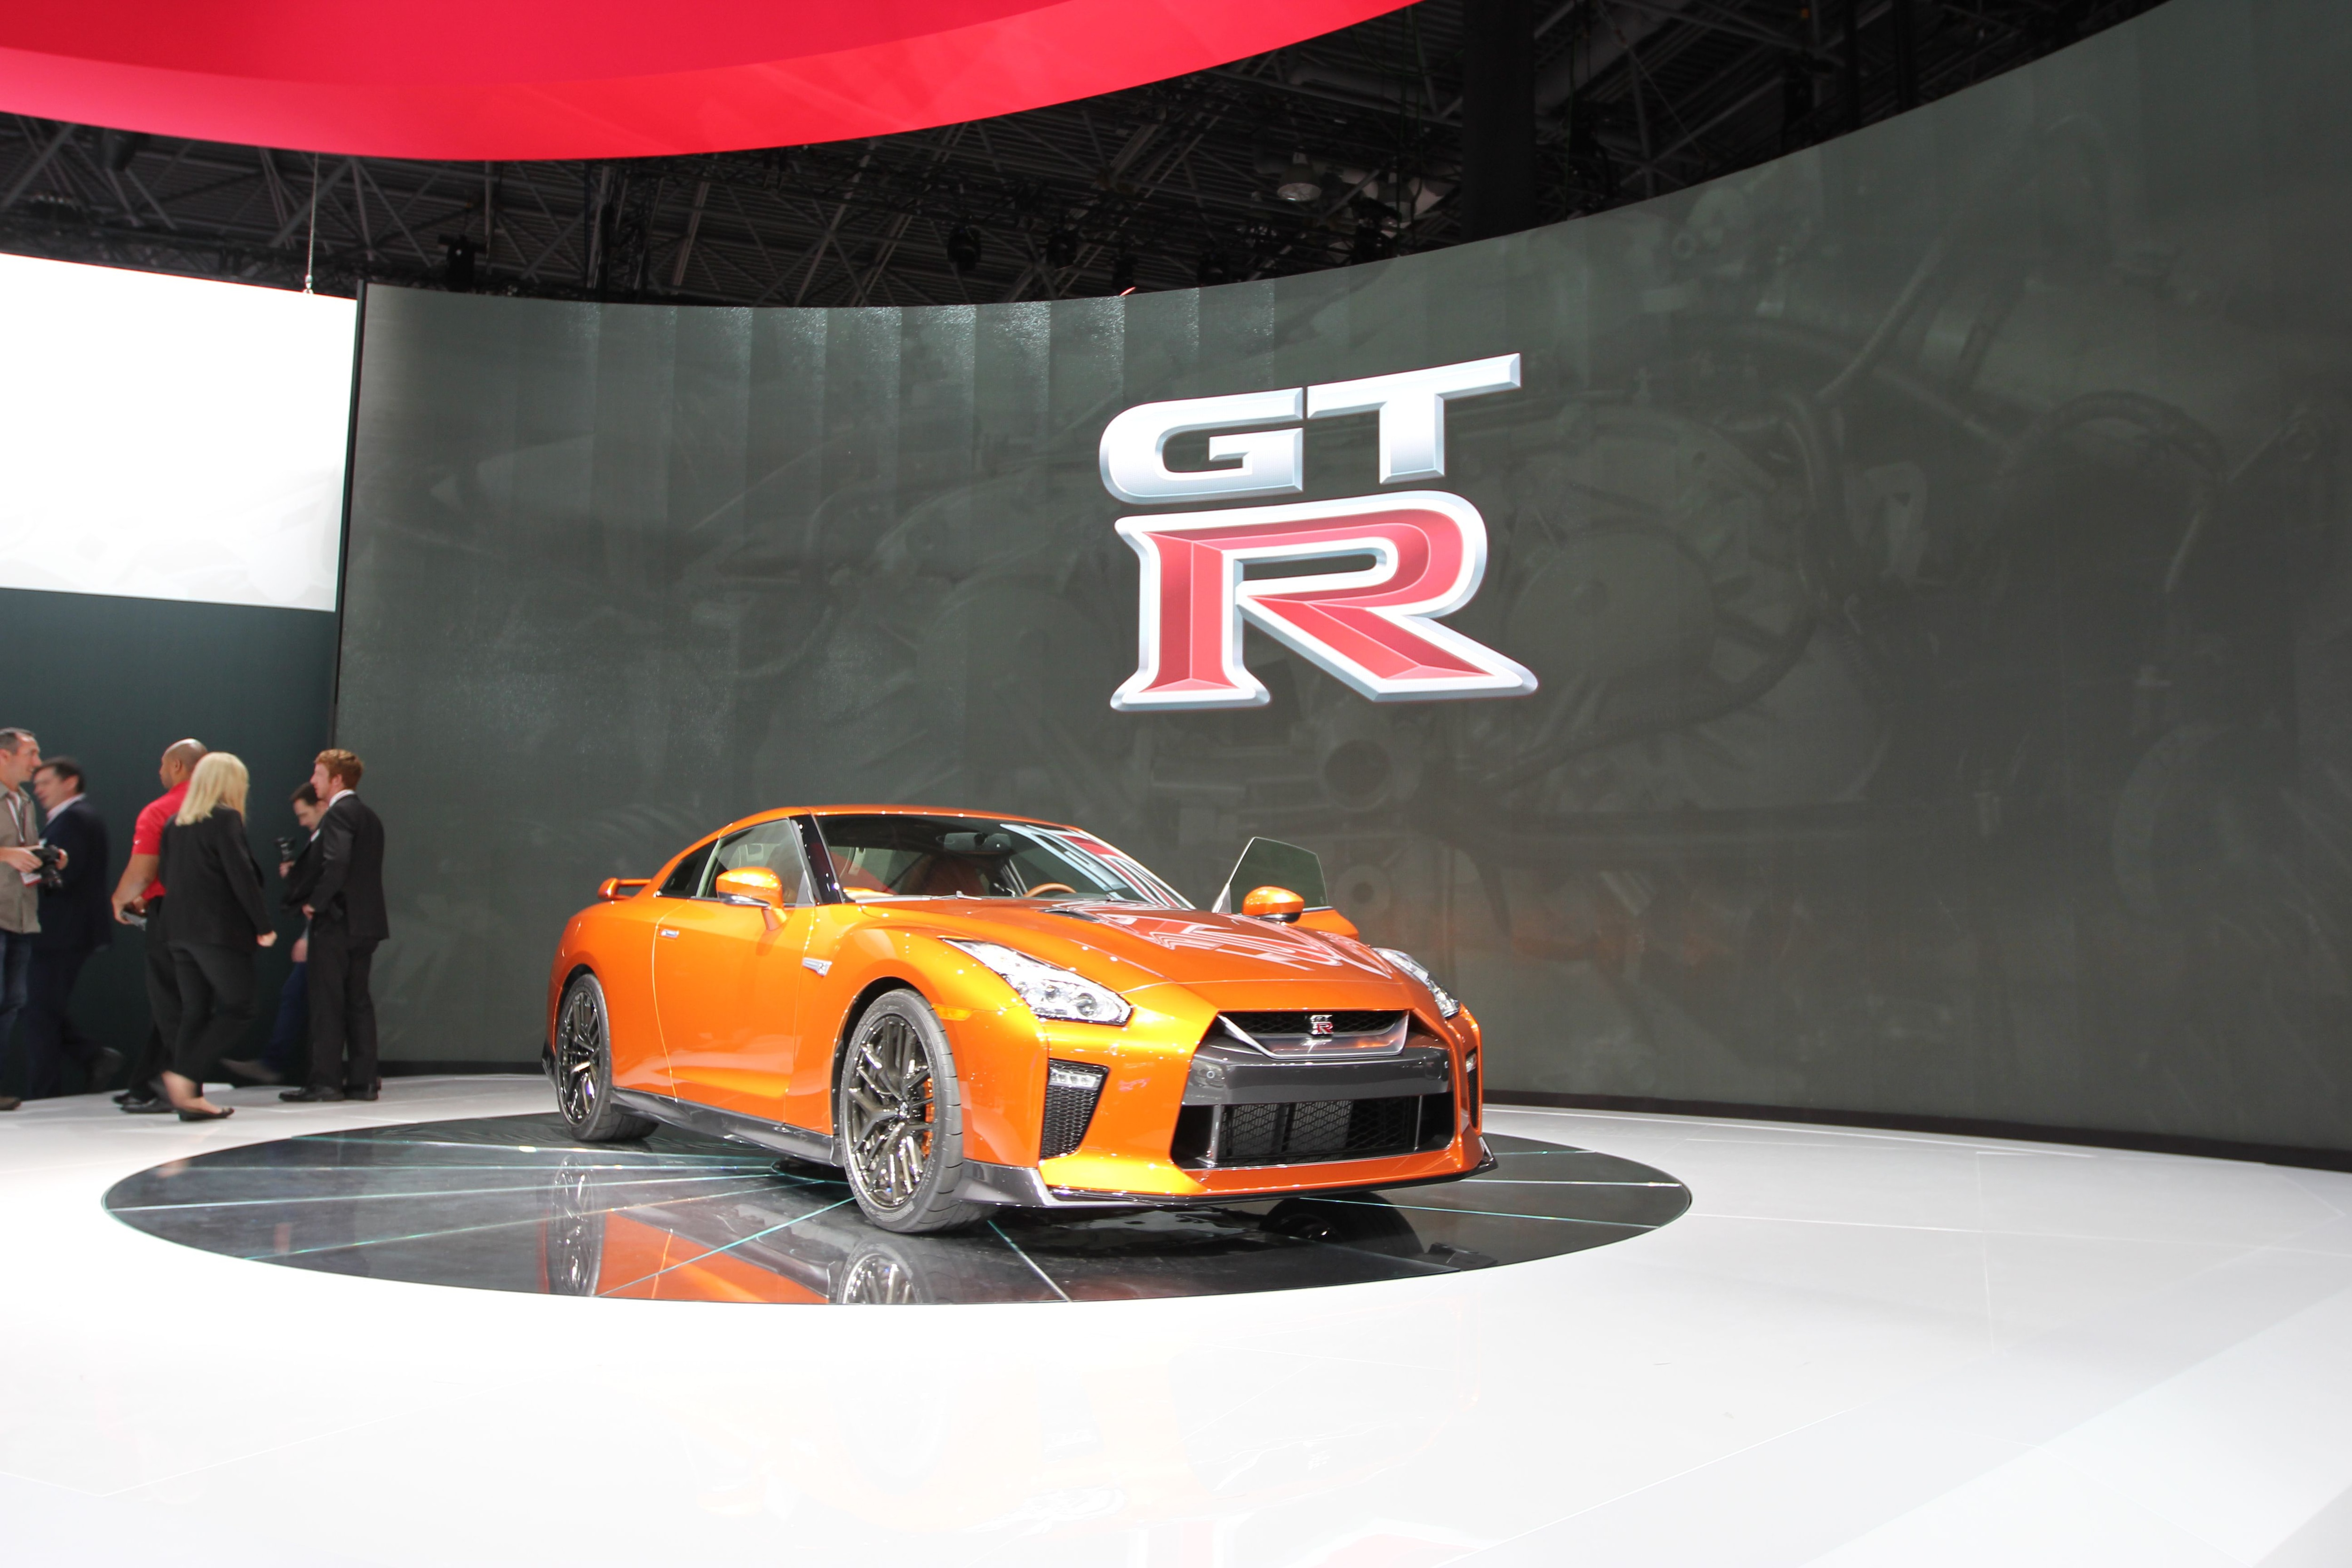 10 fastest 4 cylinder cars under 40 000 nissan gt r historic exhibit at the 2016 new york auto show